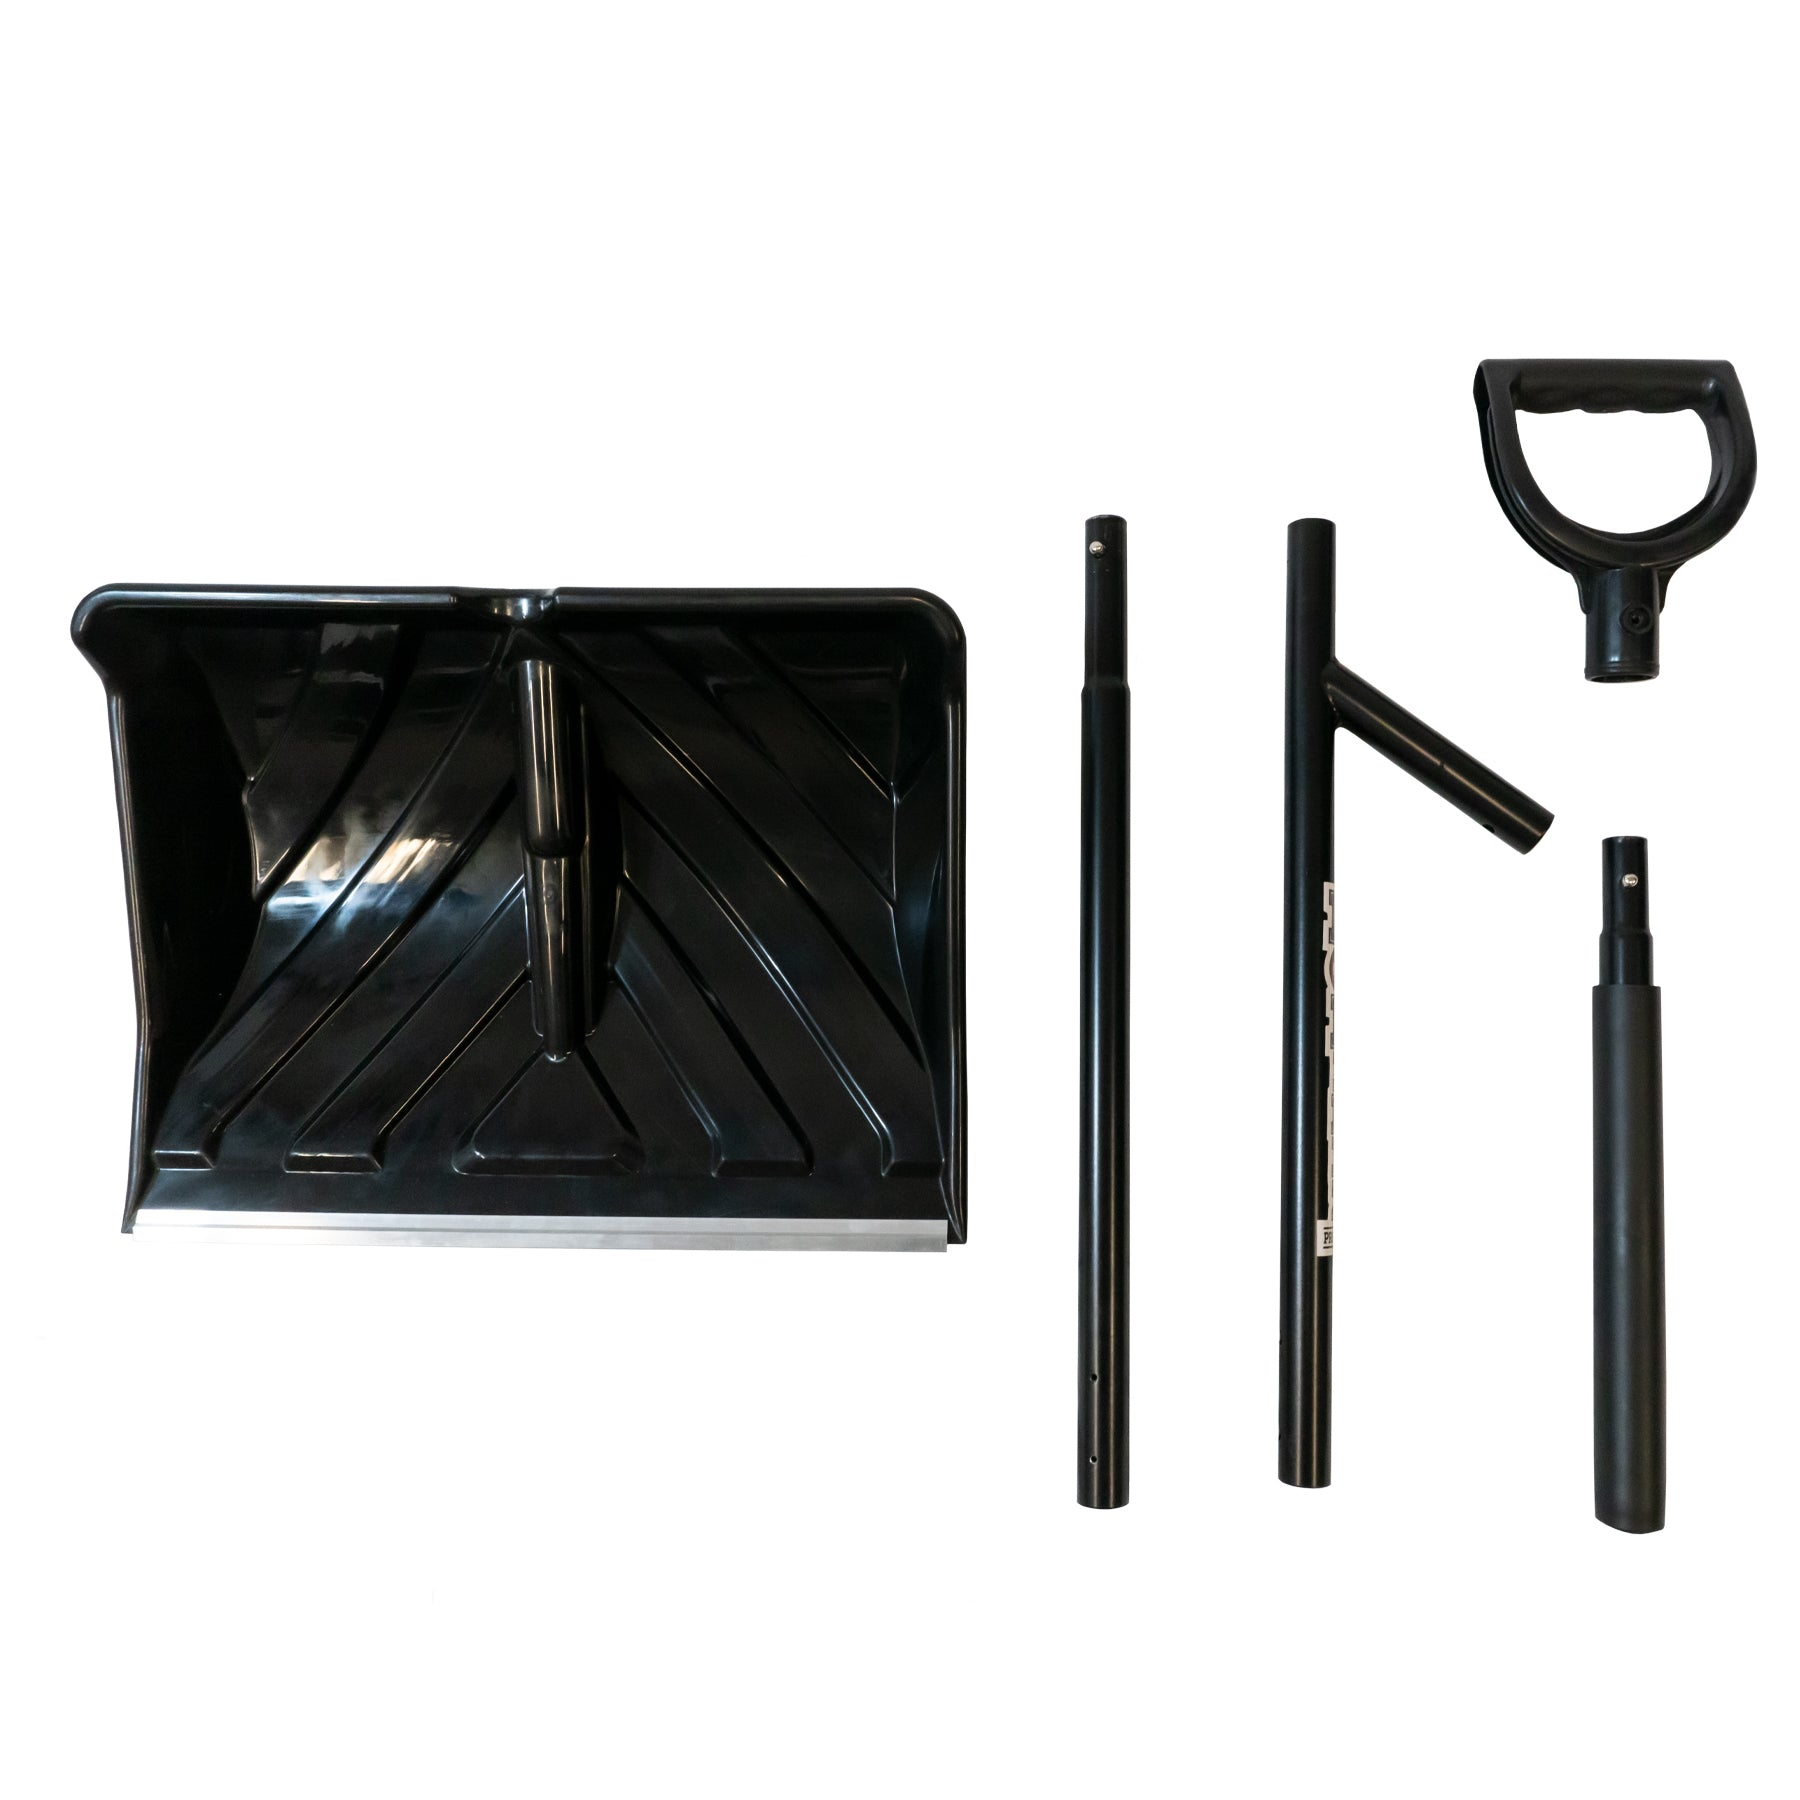 Z's NoBendz Snow Shovel – Preseason sale, see why 80% of our customers rated us a perfect 5 out of 5!  FREE SHIPPING!!